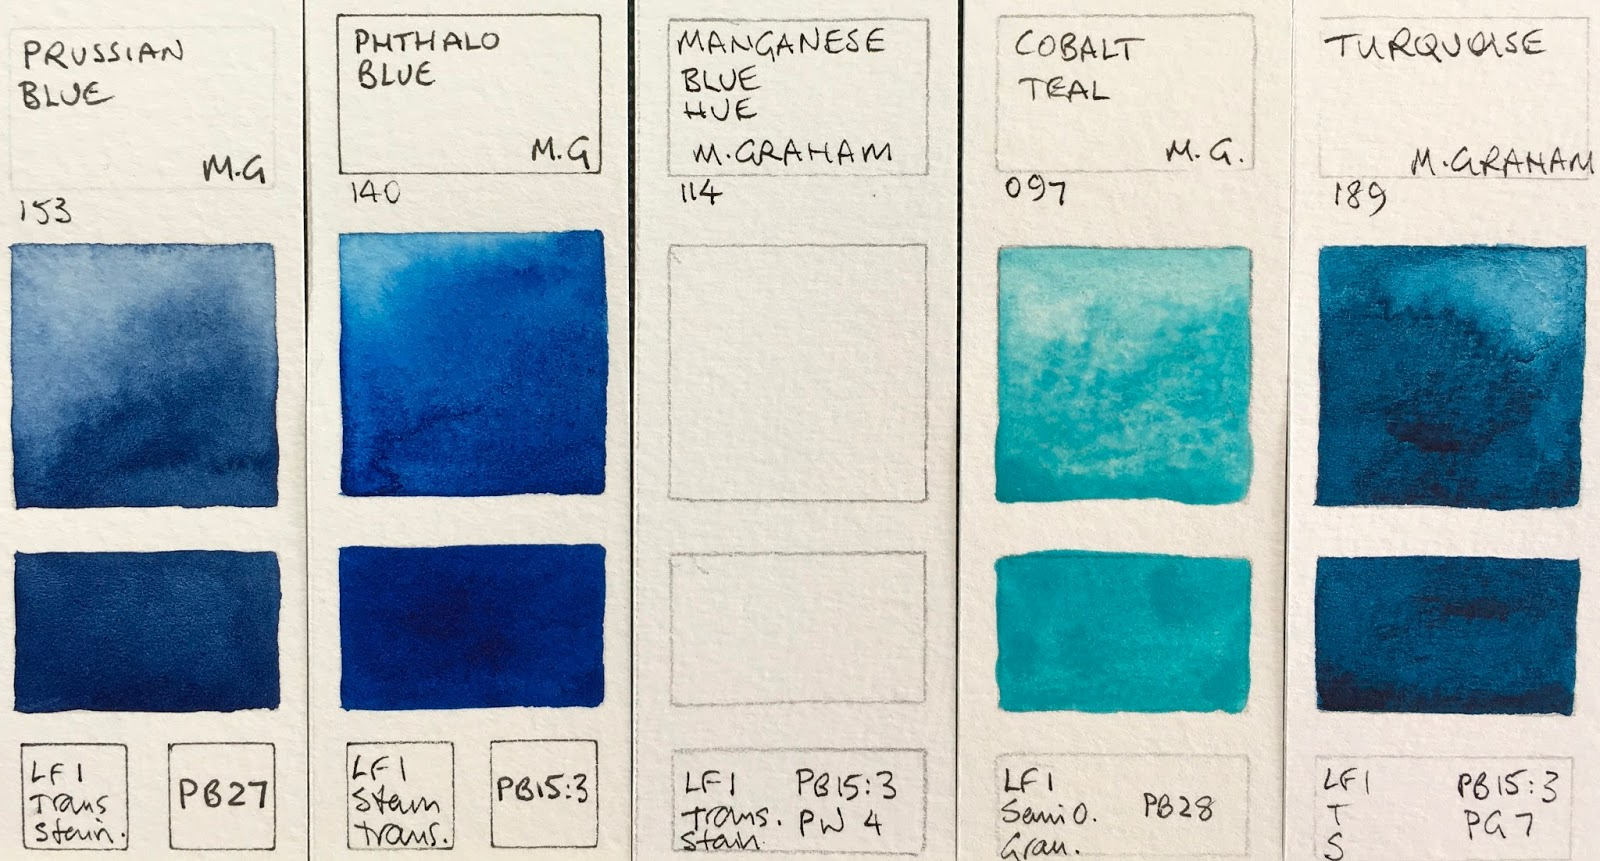 Jane blundell artist june 2017 maham watercolours prussian blue phthalo blue manganese blue hue not shown cobalt teal turquoise nvjuhfo Choice Image